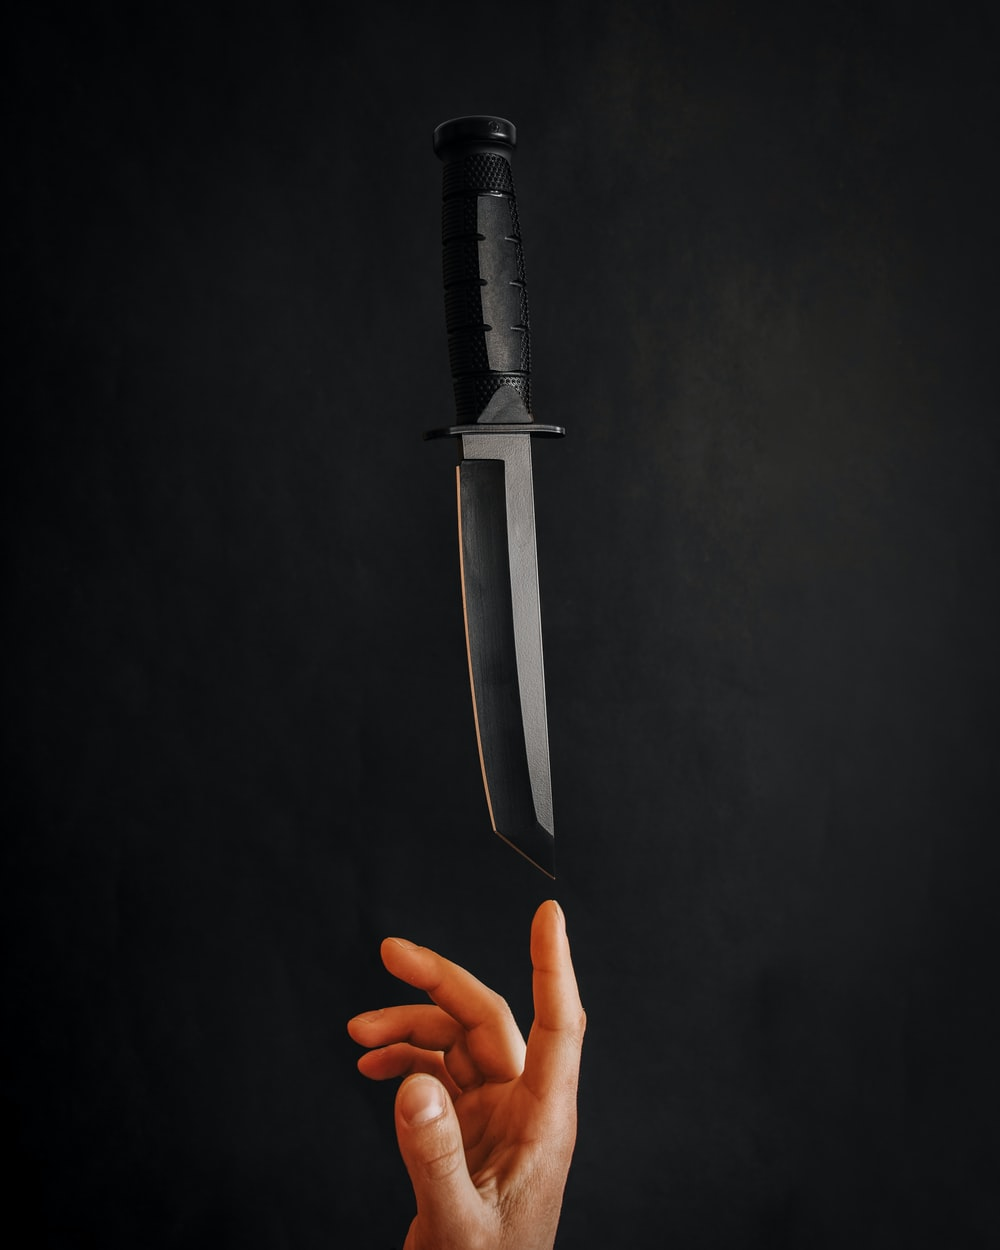 person holding stainless steel knife